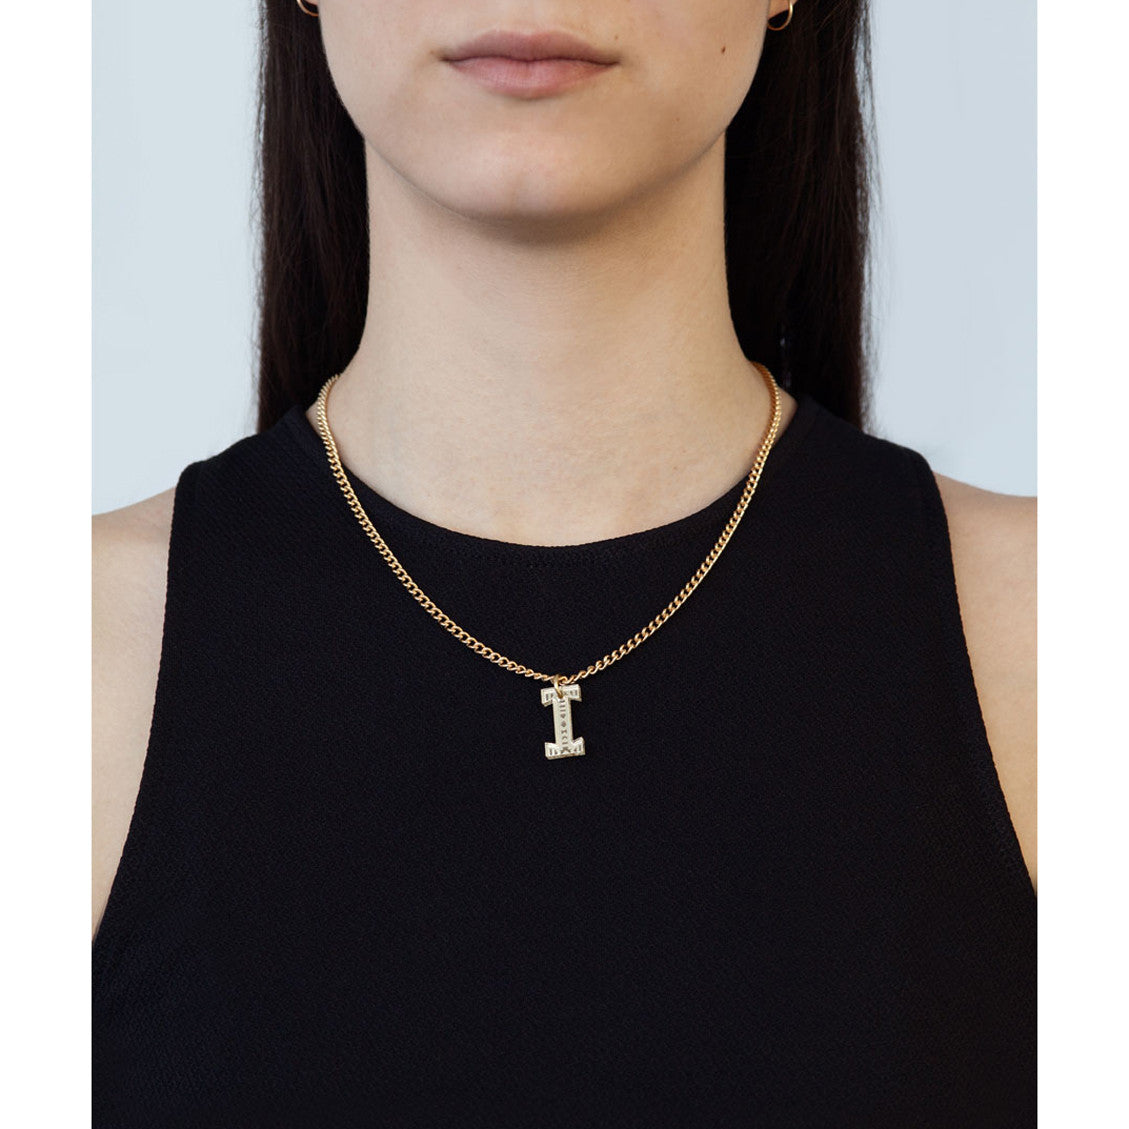 Tribal Letter necklace - I